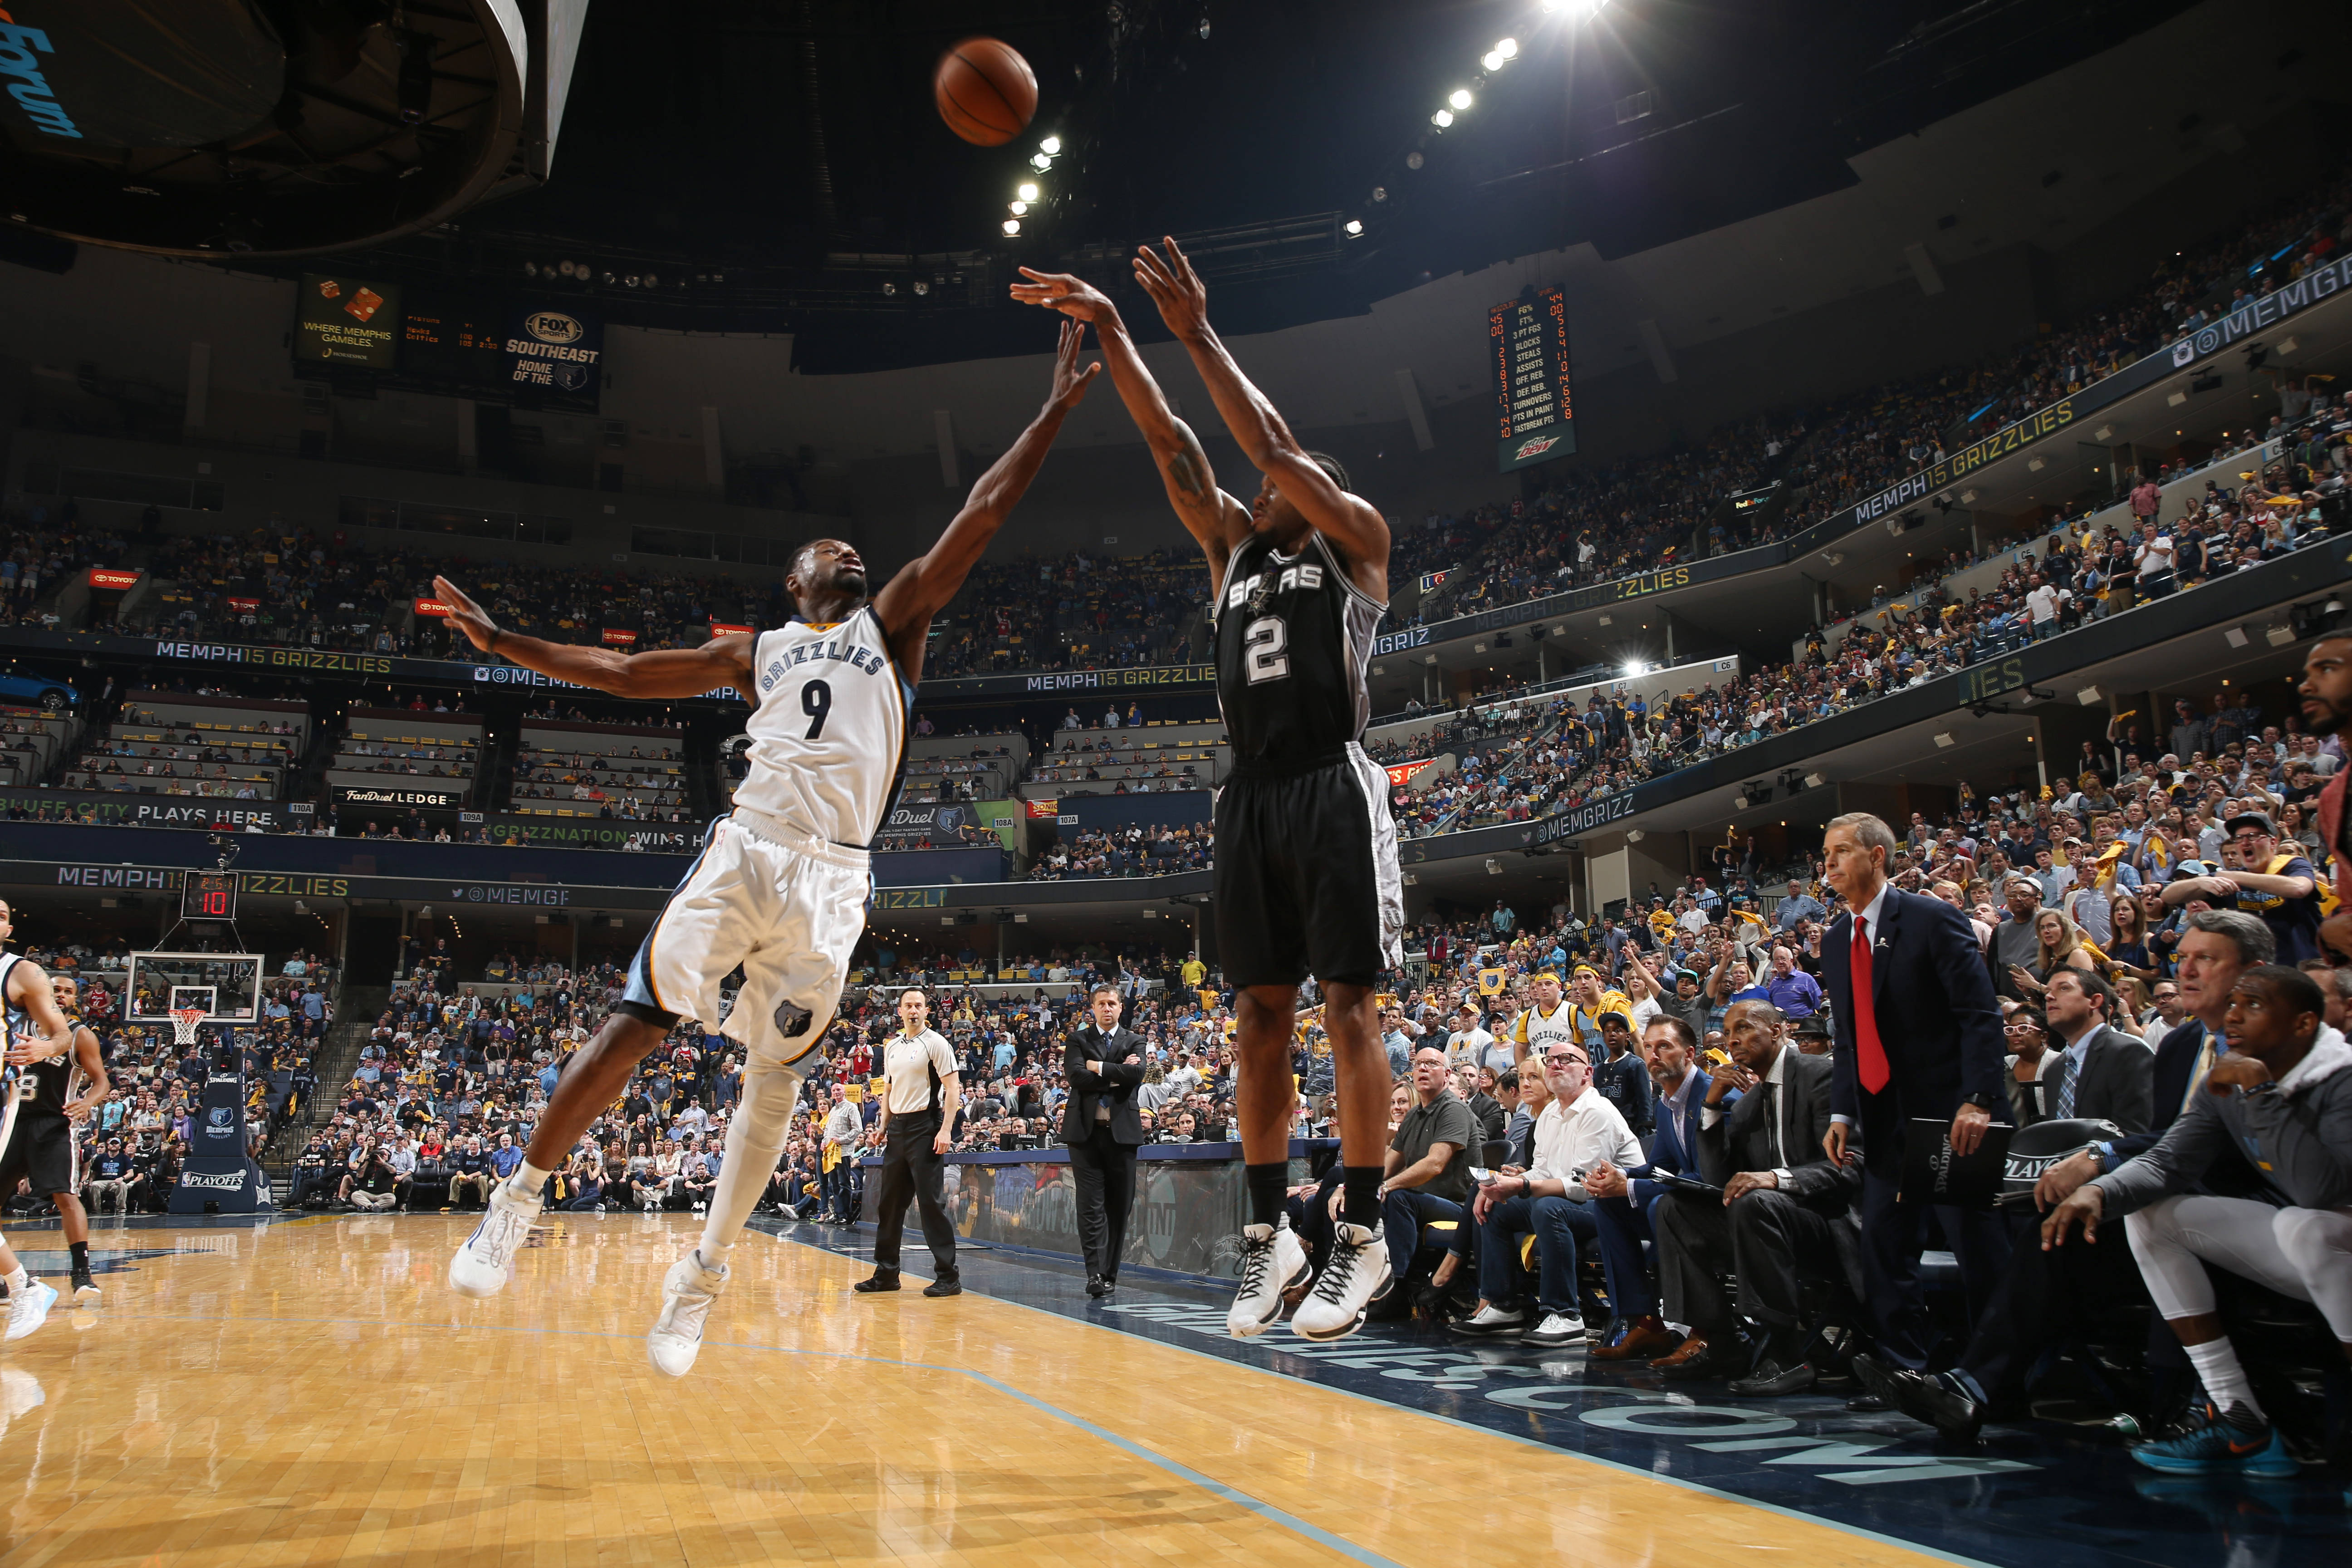 MEMPHIS, TN - APRIL 22: Kawhi Leonard #2 of the San Antonio Spurs shoots the ball against the Memphis Grizzlies in Game Three of the Eastern Conference Quarterfinals of the 2016 NBA Playoffs on April 22, 2016 (Photo by Joe Murphy/NBAE via Getty Images)